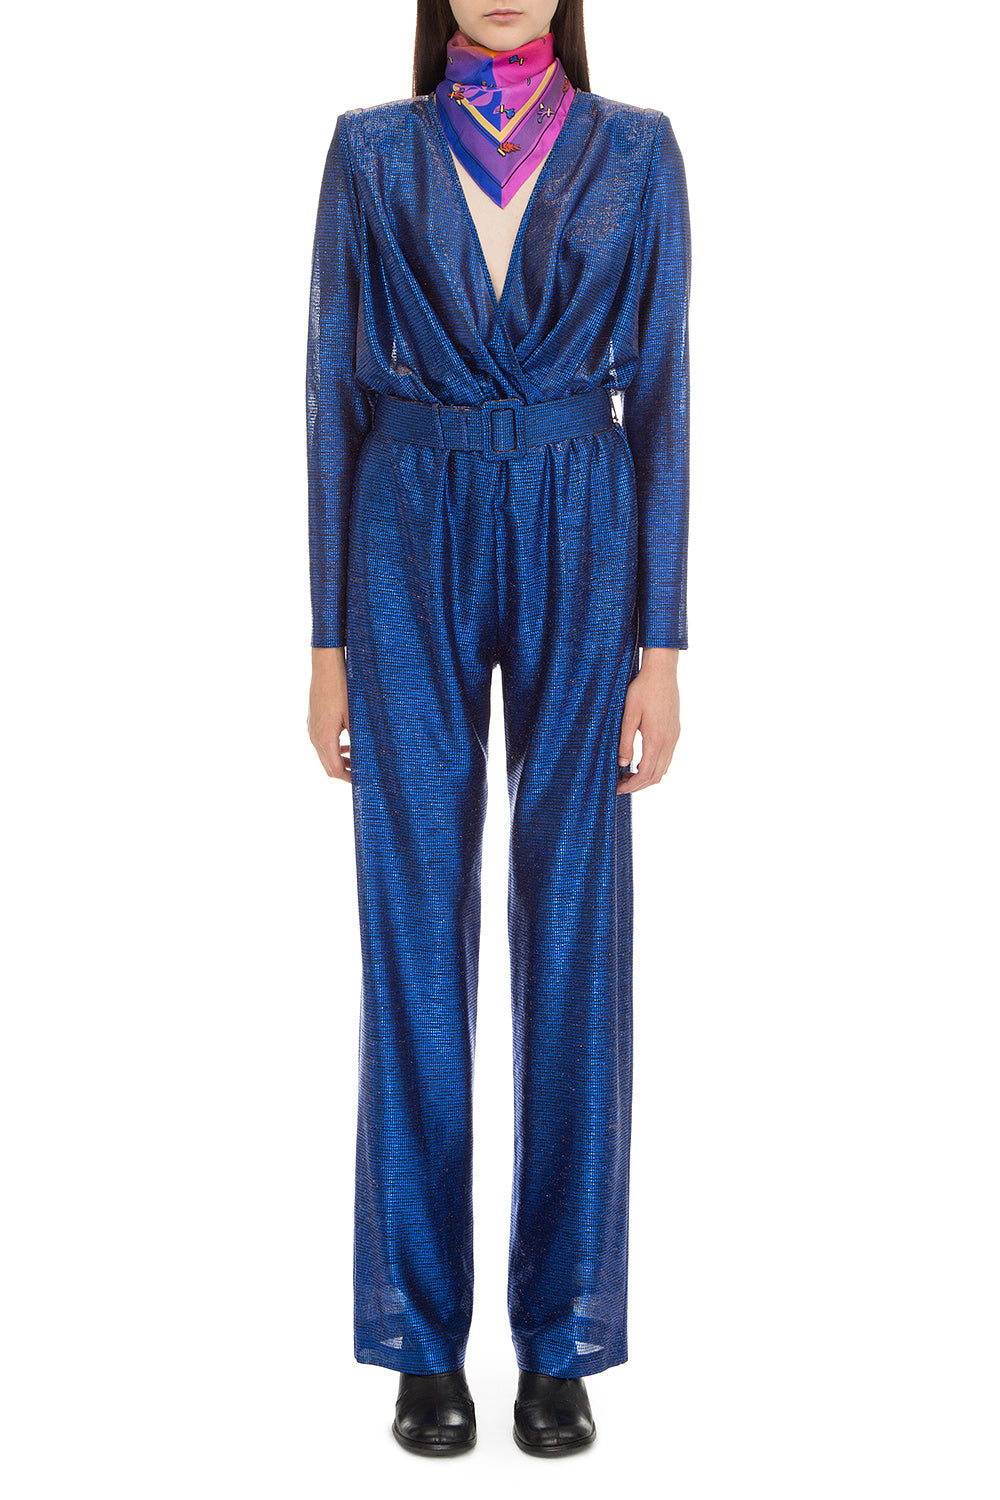 Blue wrap around overall